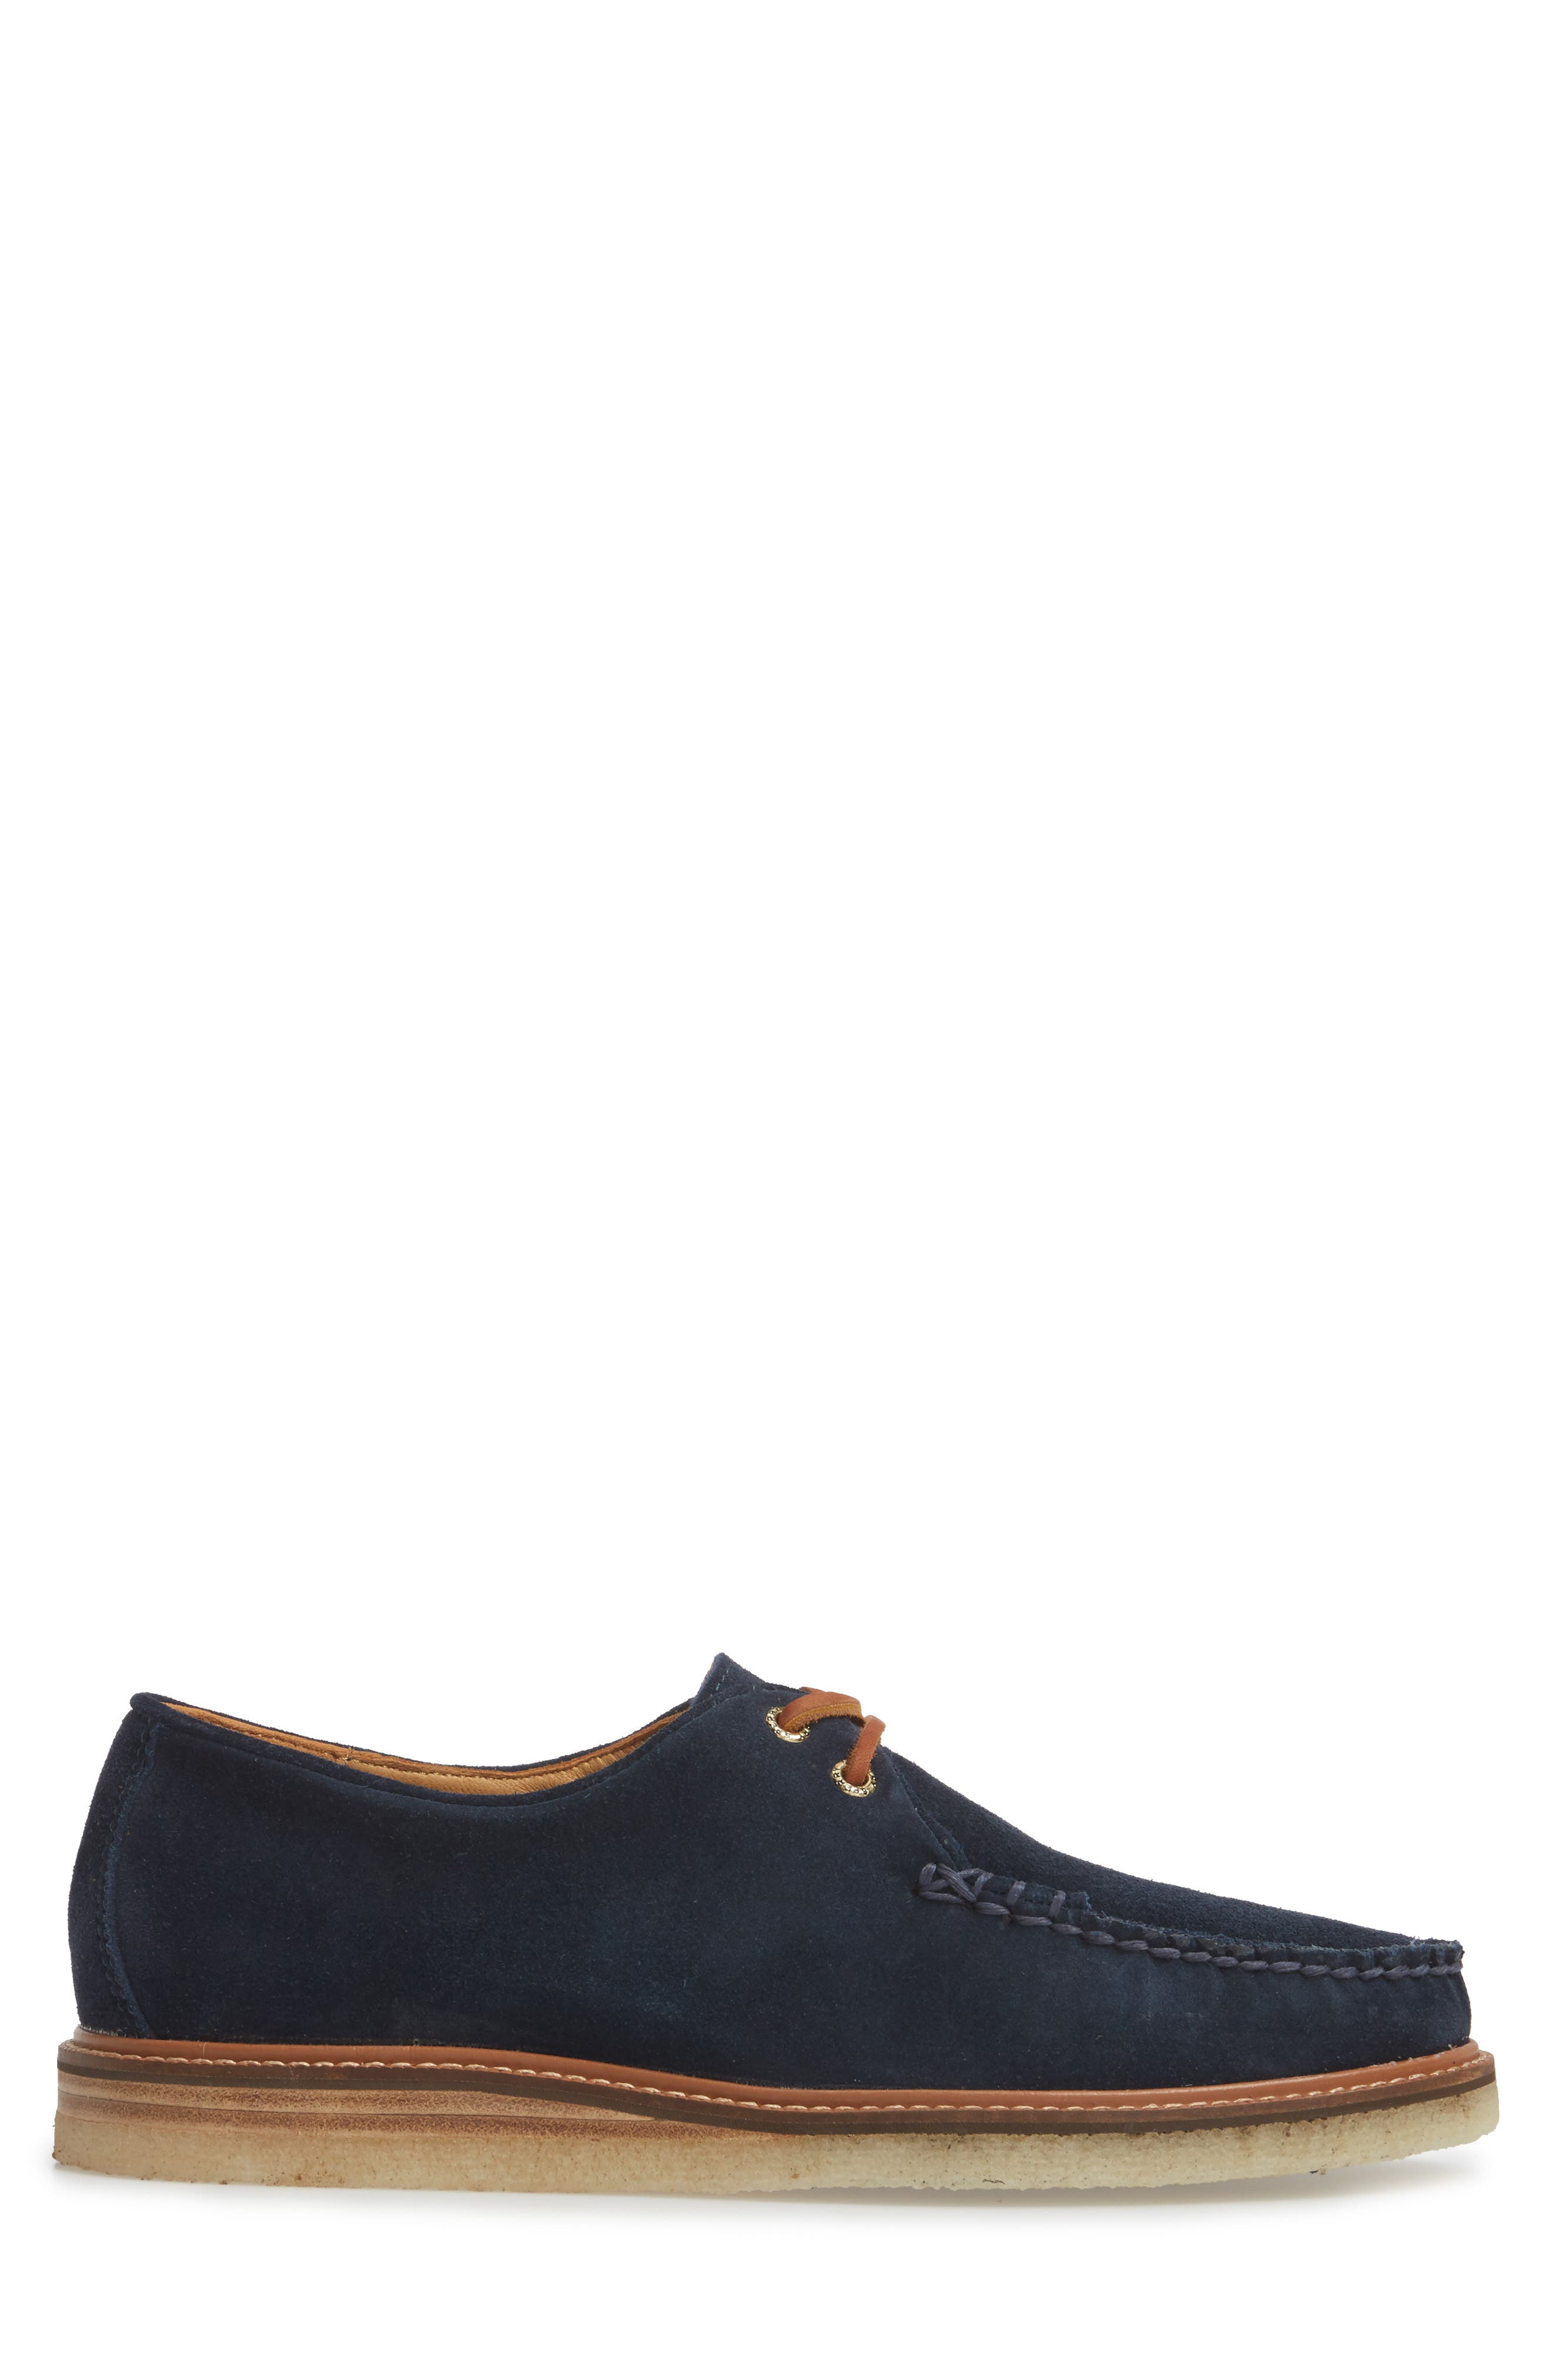 SPERRY, Gold Cup Captain's Crepe Sole Oxford, Alternate thumbnail 3, color, BLUE LEATHER/ SUEDE